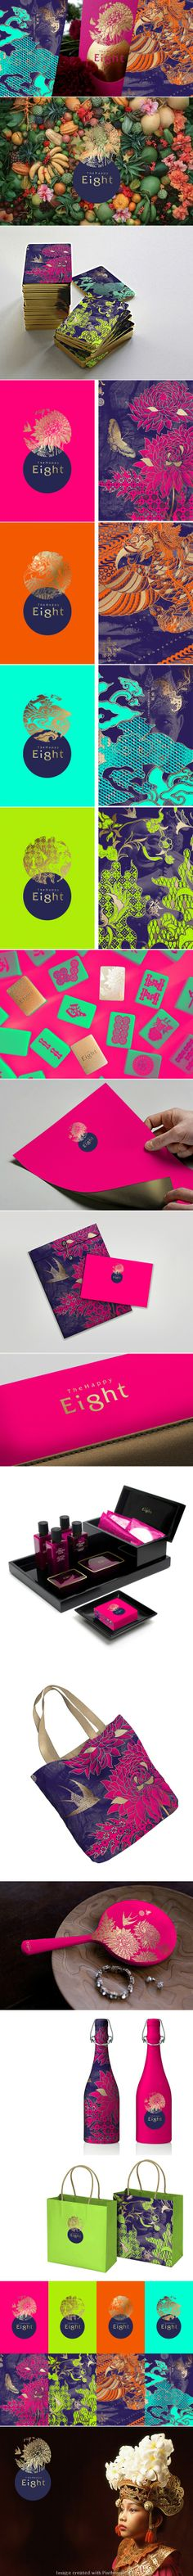 The Happy Eight Hotel Branding. If I want to get quirky later with the colors of the other advertising material. Melissa Pavlich.